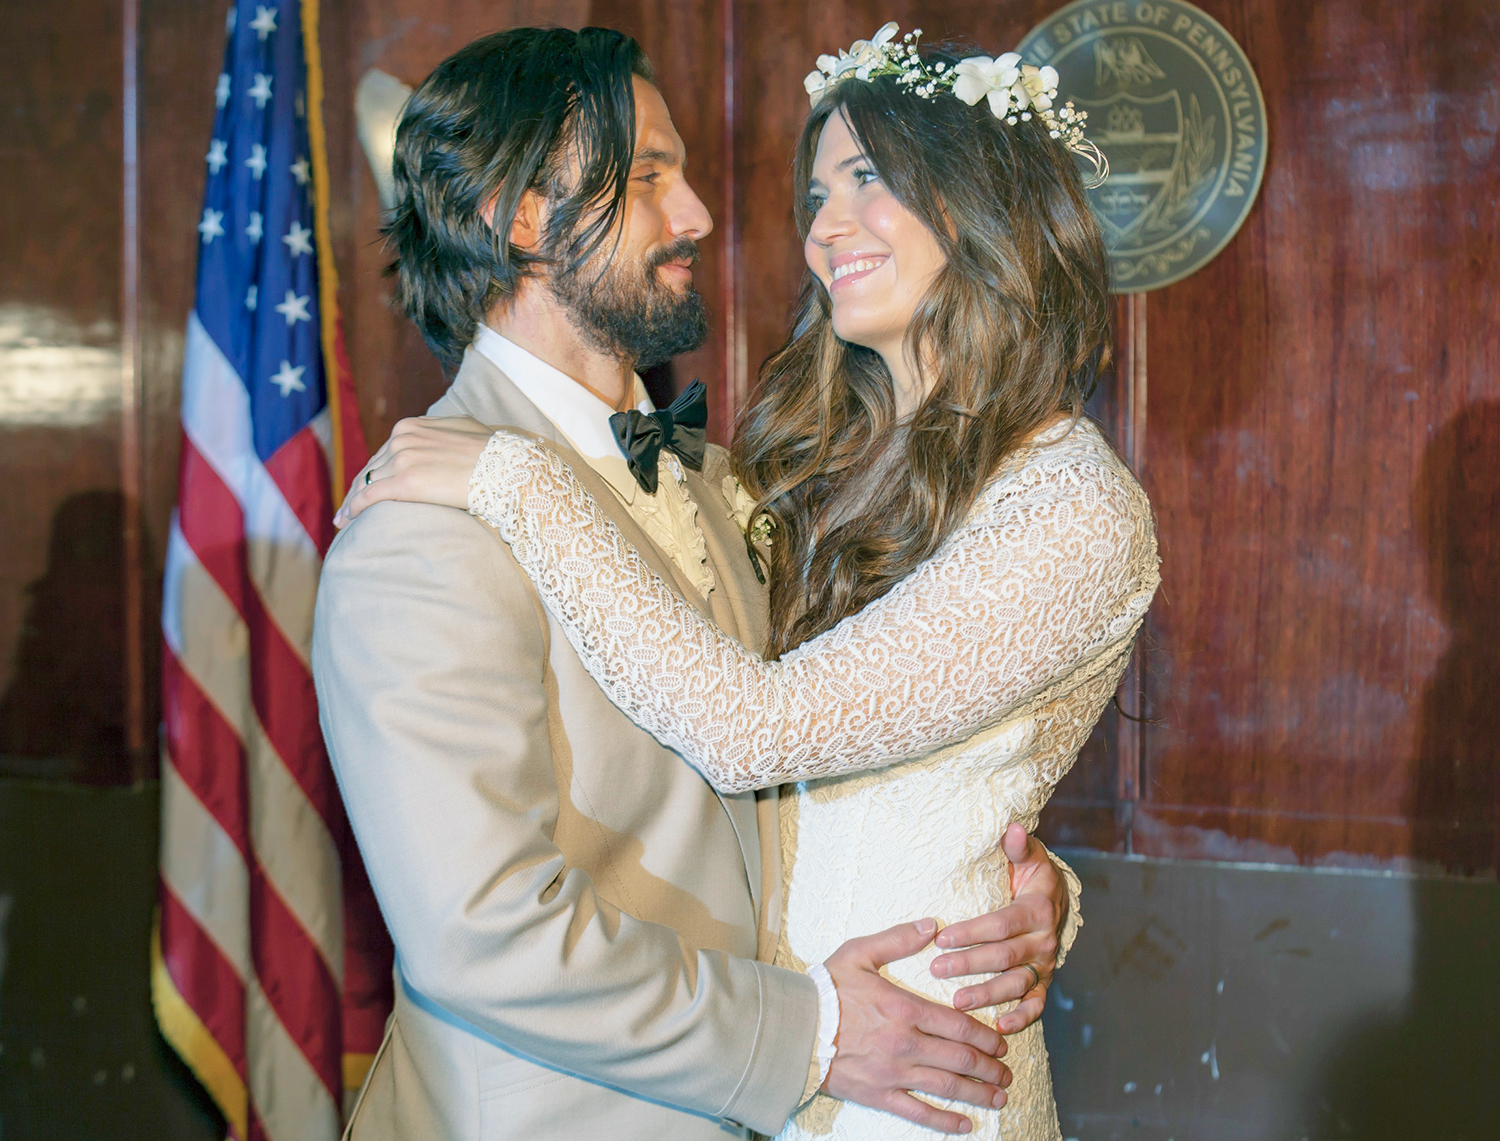 Milo Ventimiglia as Jack and Mandy Moore as Rebecca in 'This Is Us.'